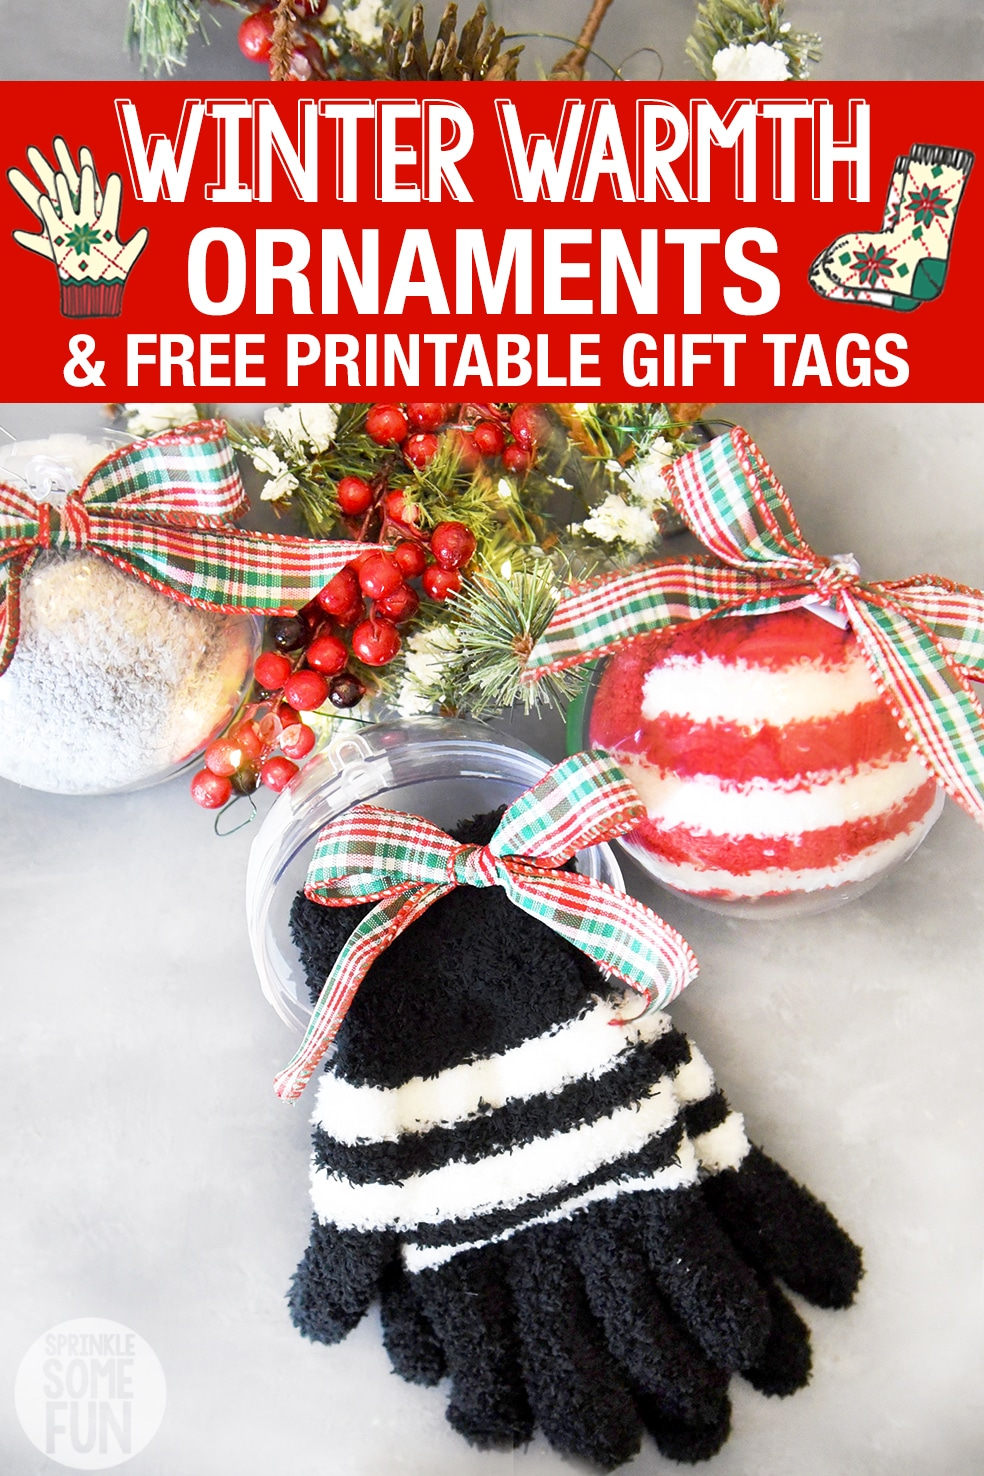 Winter Socks and Gloves Ornaments